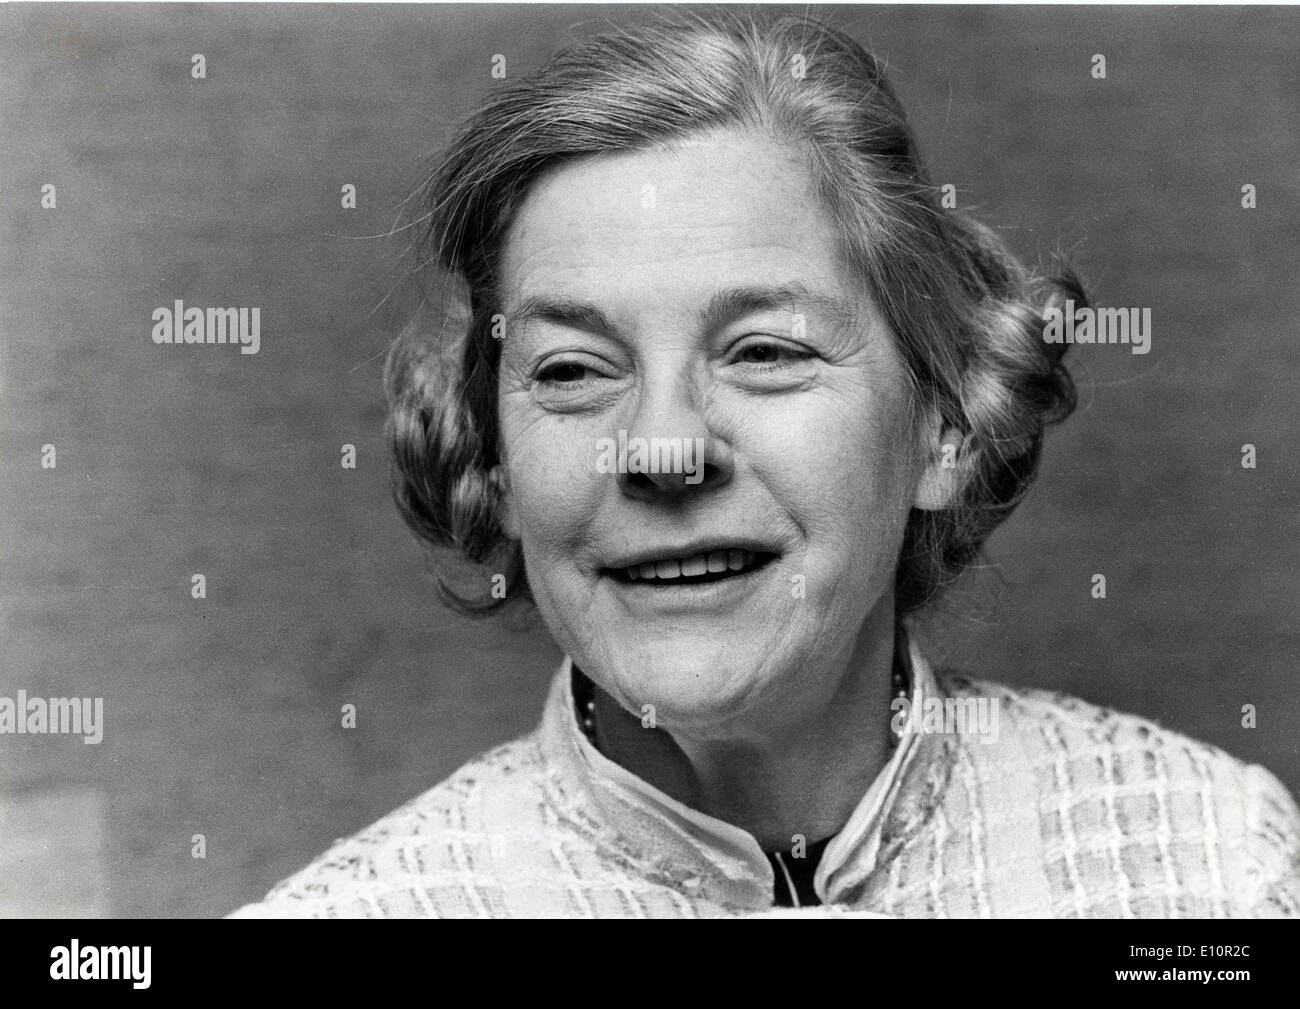 Dec. 11, 1973 - Stockholm, Sweden - Writer, Novelist MARY MCCARTHY being interviewed at a press conference in Stockholm. - Stock Image